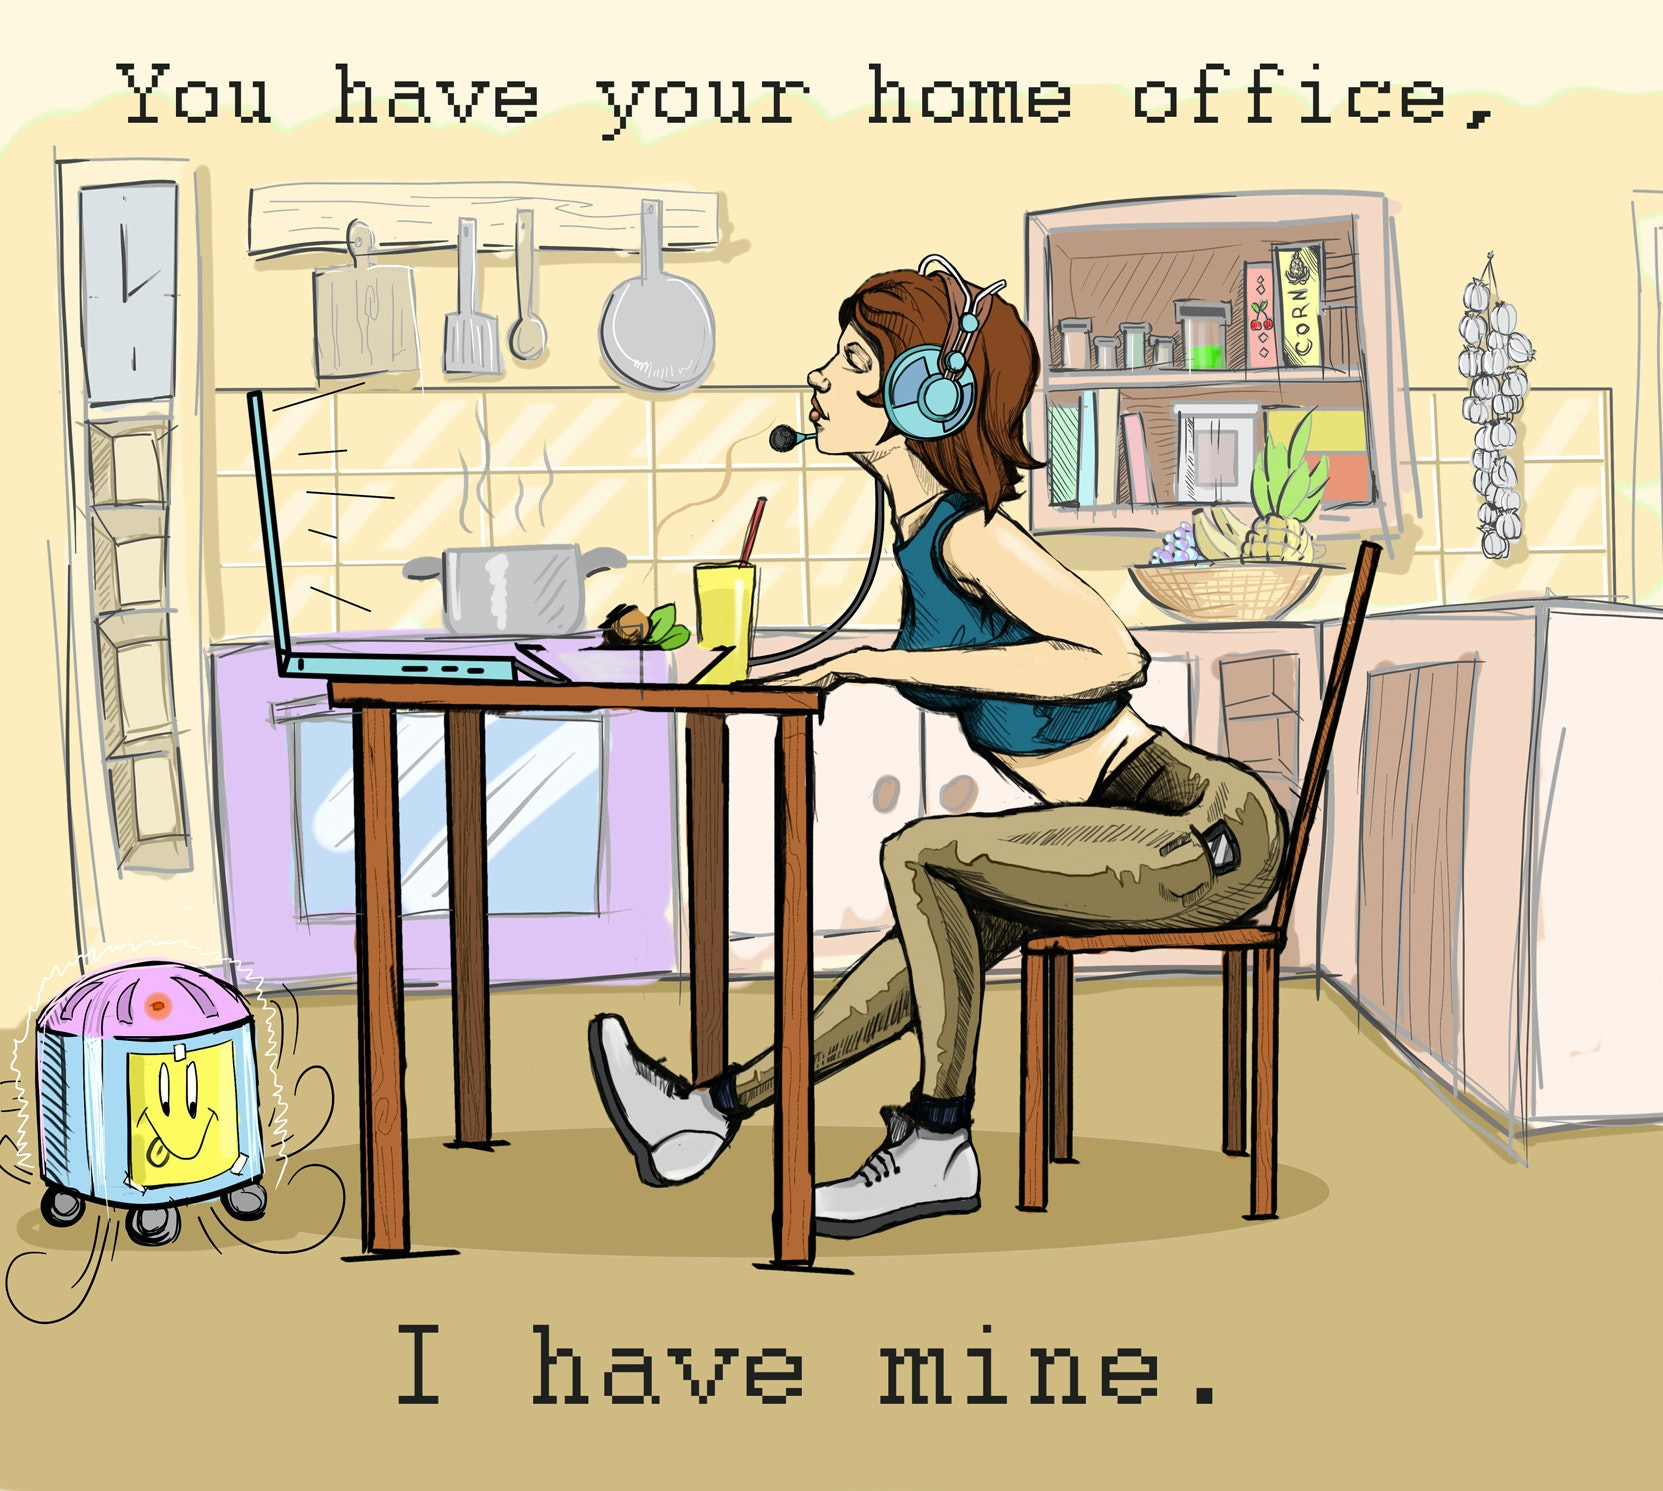 cartoon of a home office by Odius.